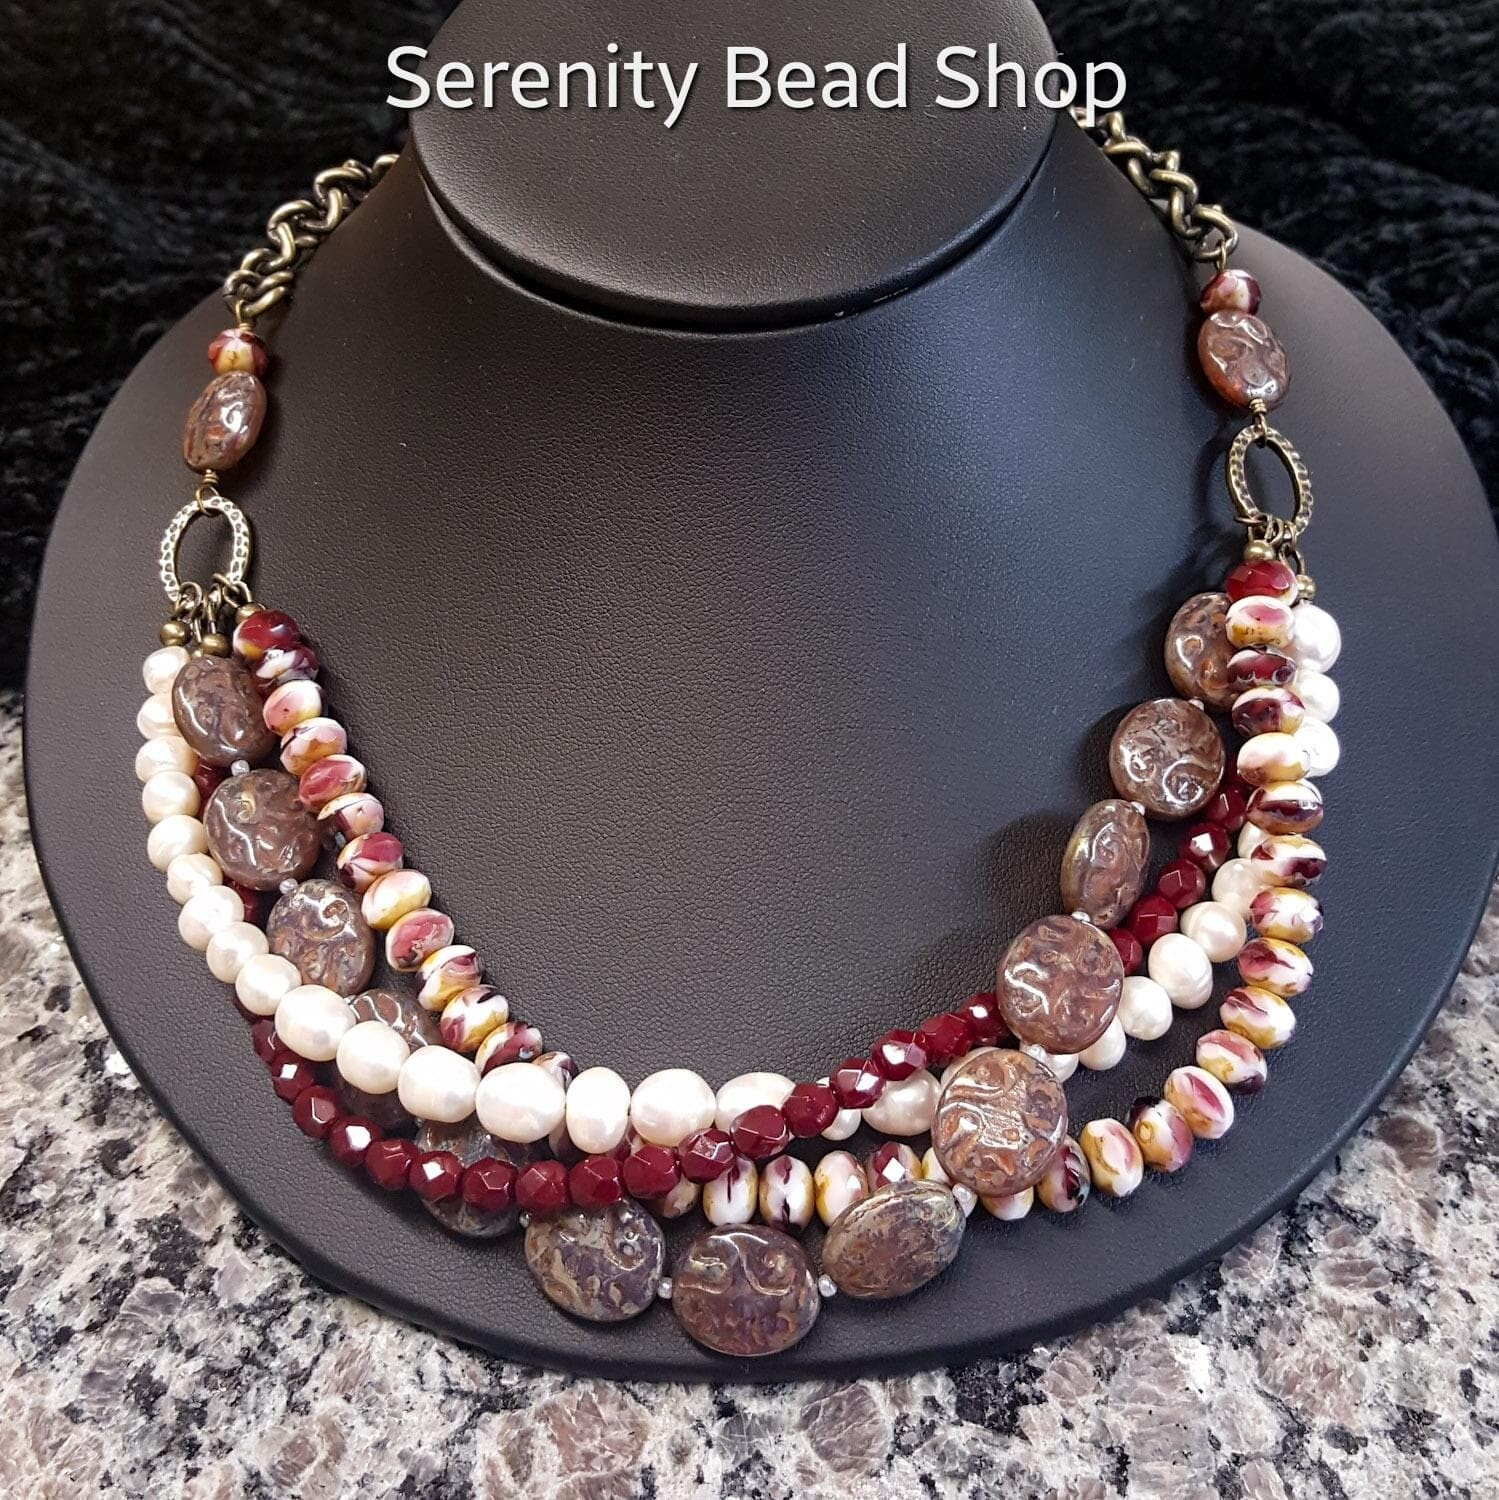 ____Multi-Strand Necklace____ Saturday, March 28th * Noon - 3pm  BEING RESCHEDULED